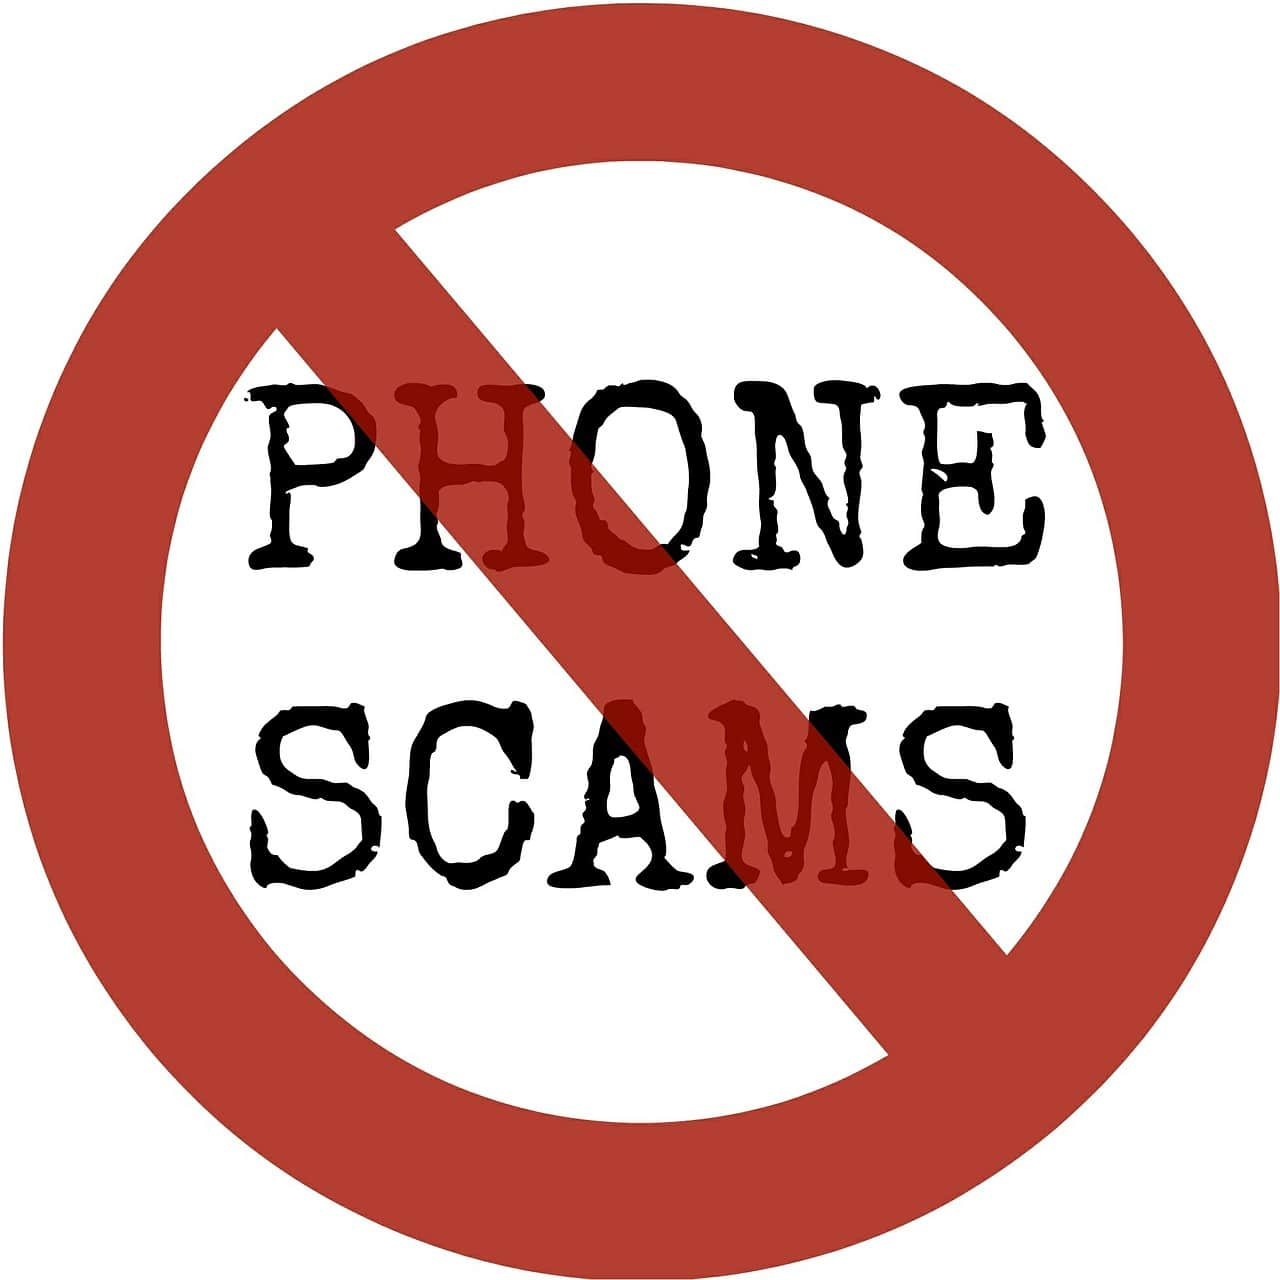 Phone Scams sign